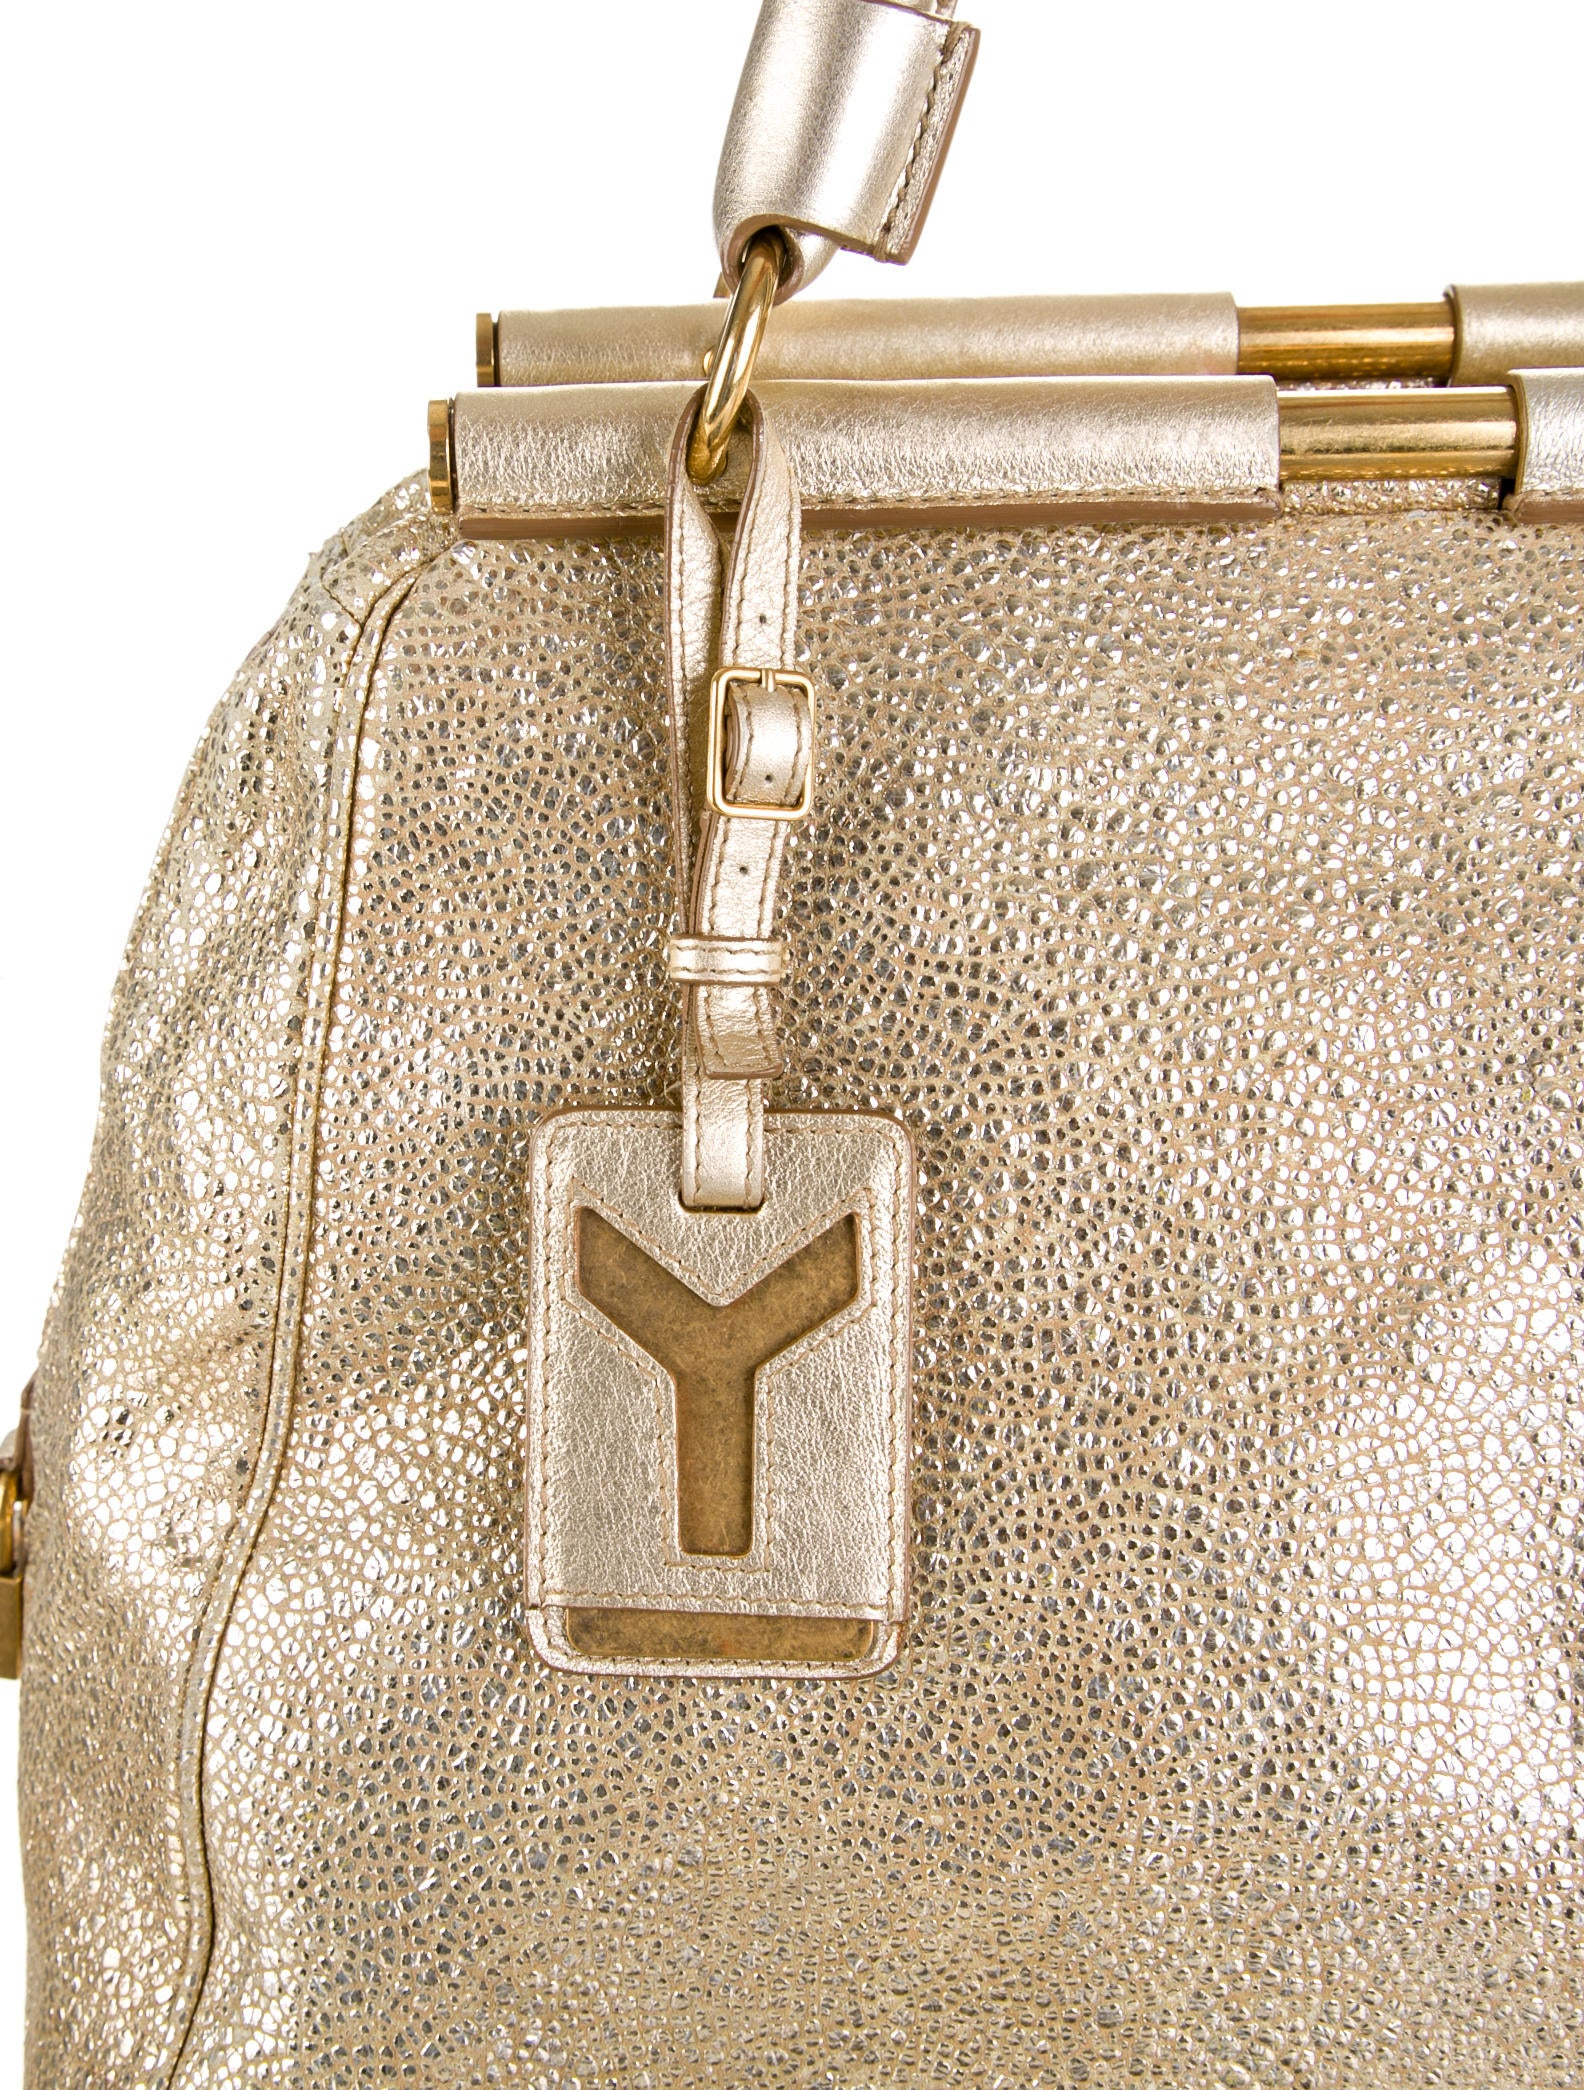 ysl prices - Yves Saint Laurent Majorelle Bag - Handbags - YVE32002 | The RealReal